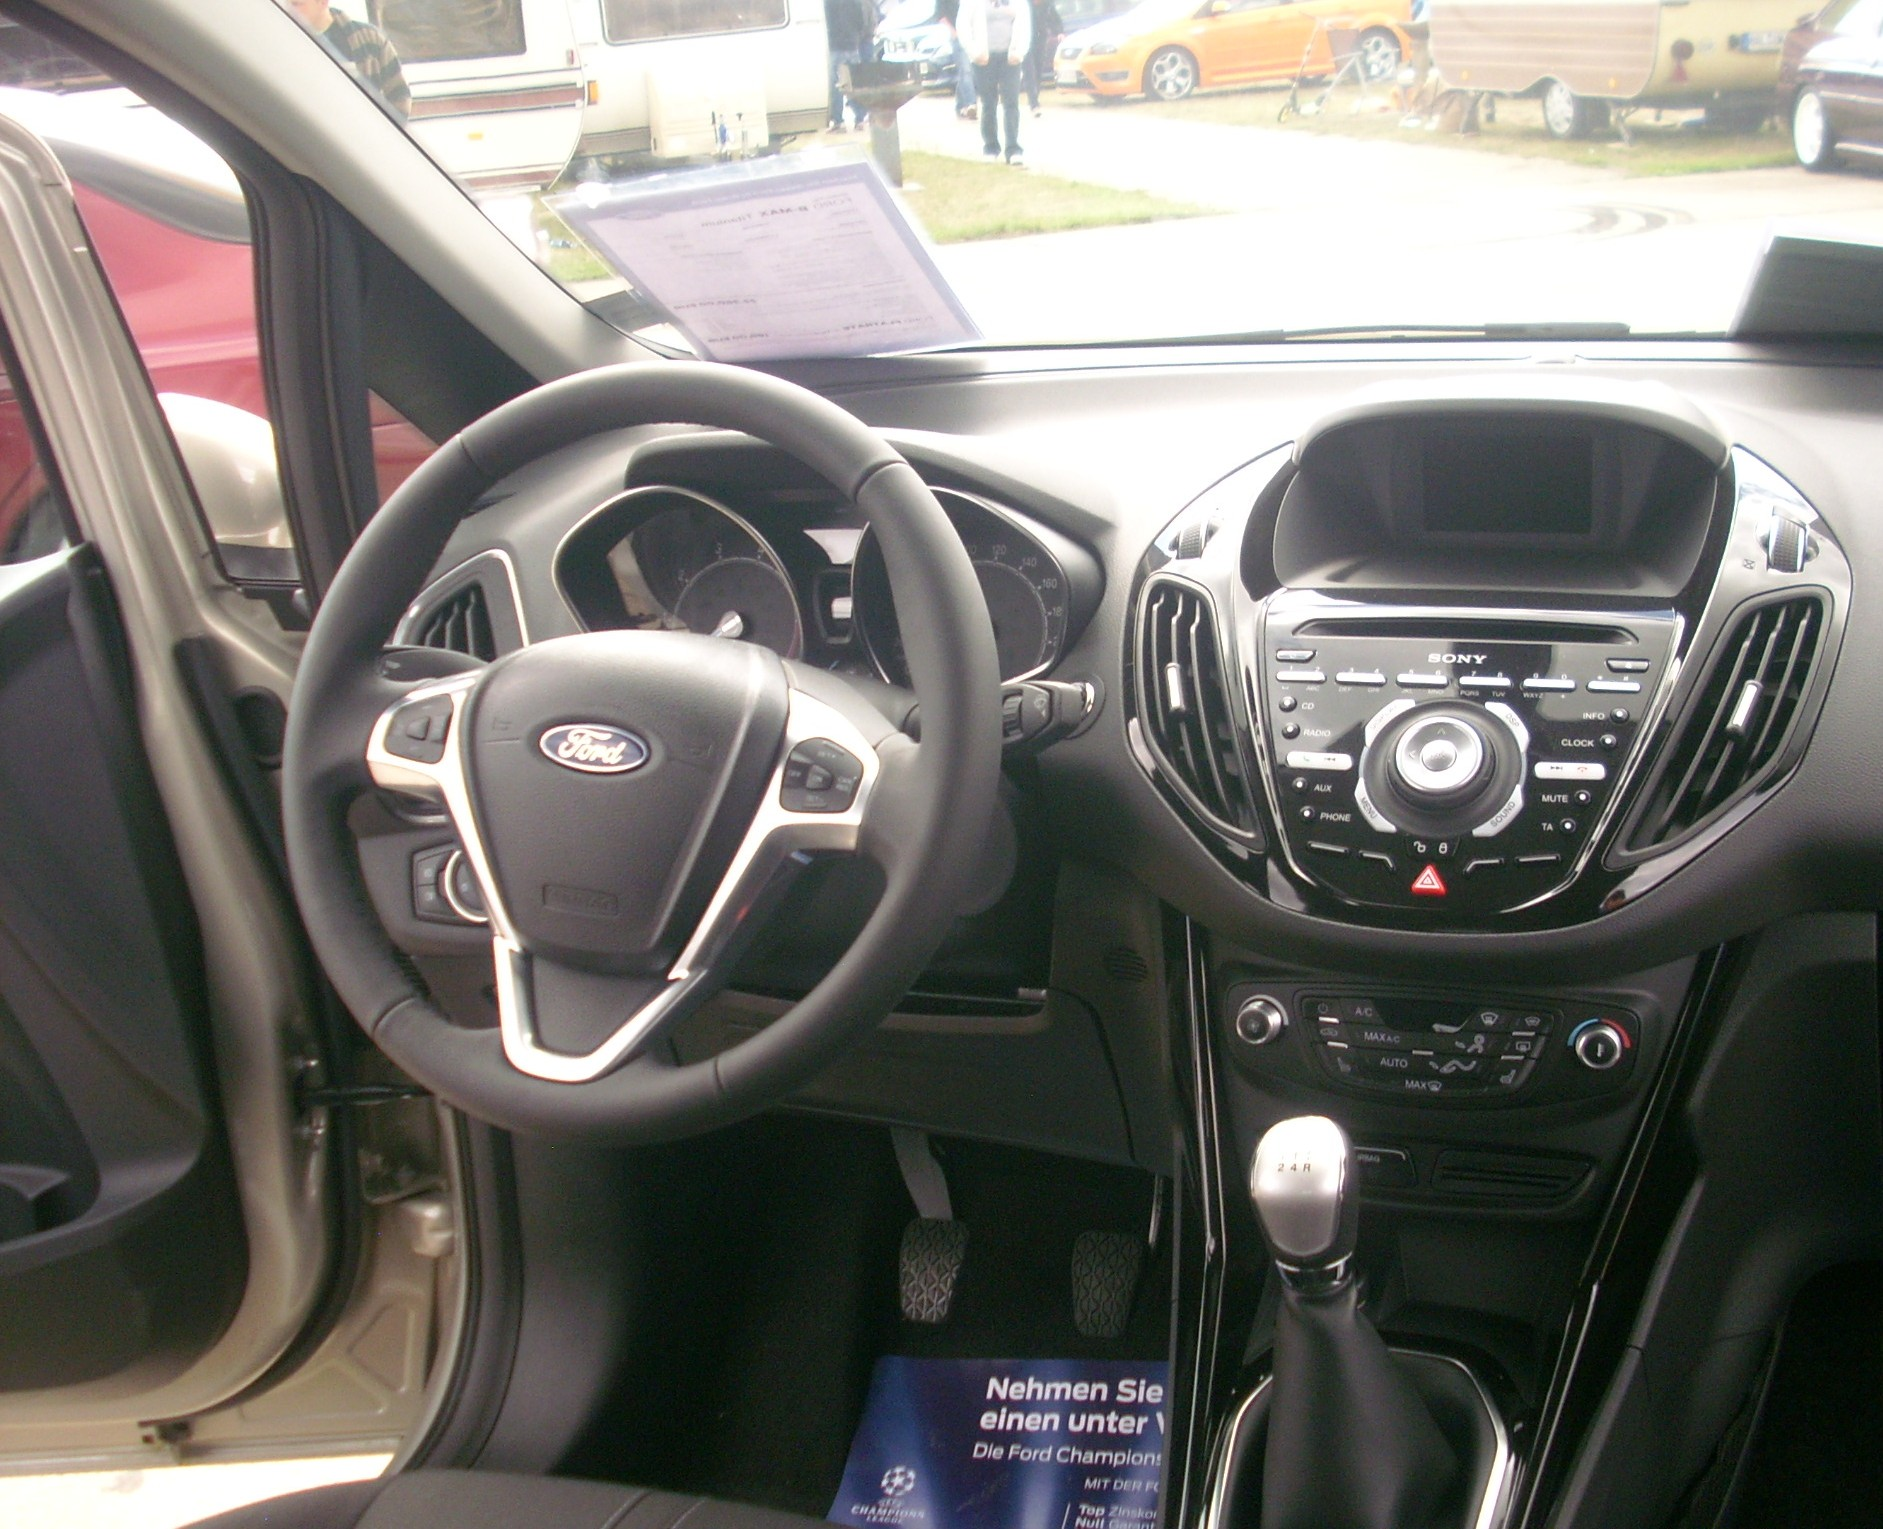 File:Ford B-MAX Titanium Cockpit.jpg - Wikimedia Commons